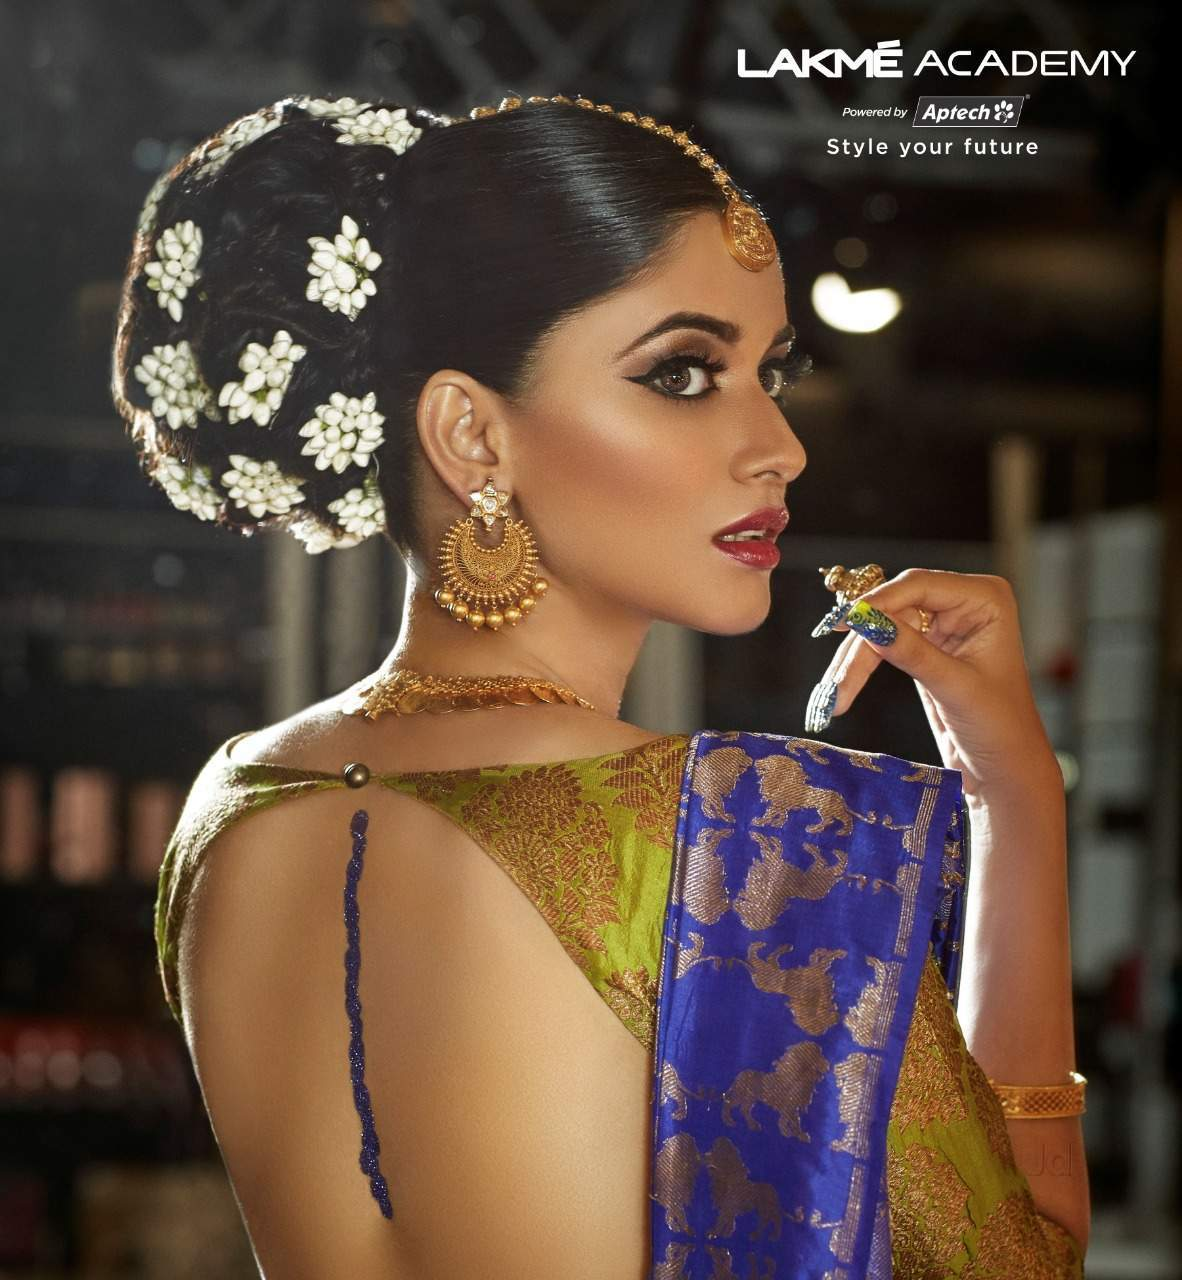 Top 20 Beauty Parlour Institutes in Secunderabad, Hyderabad